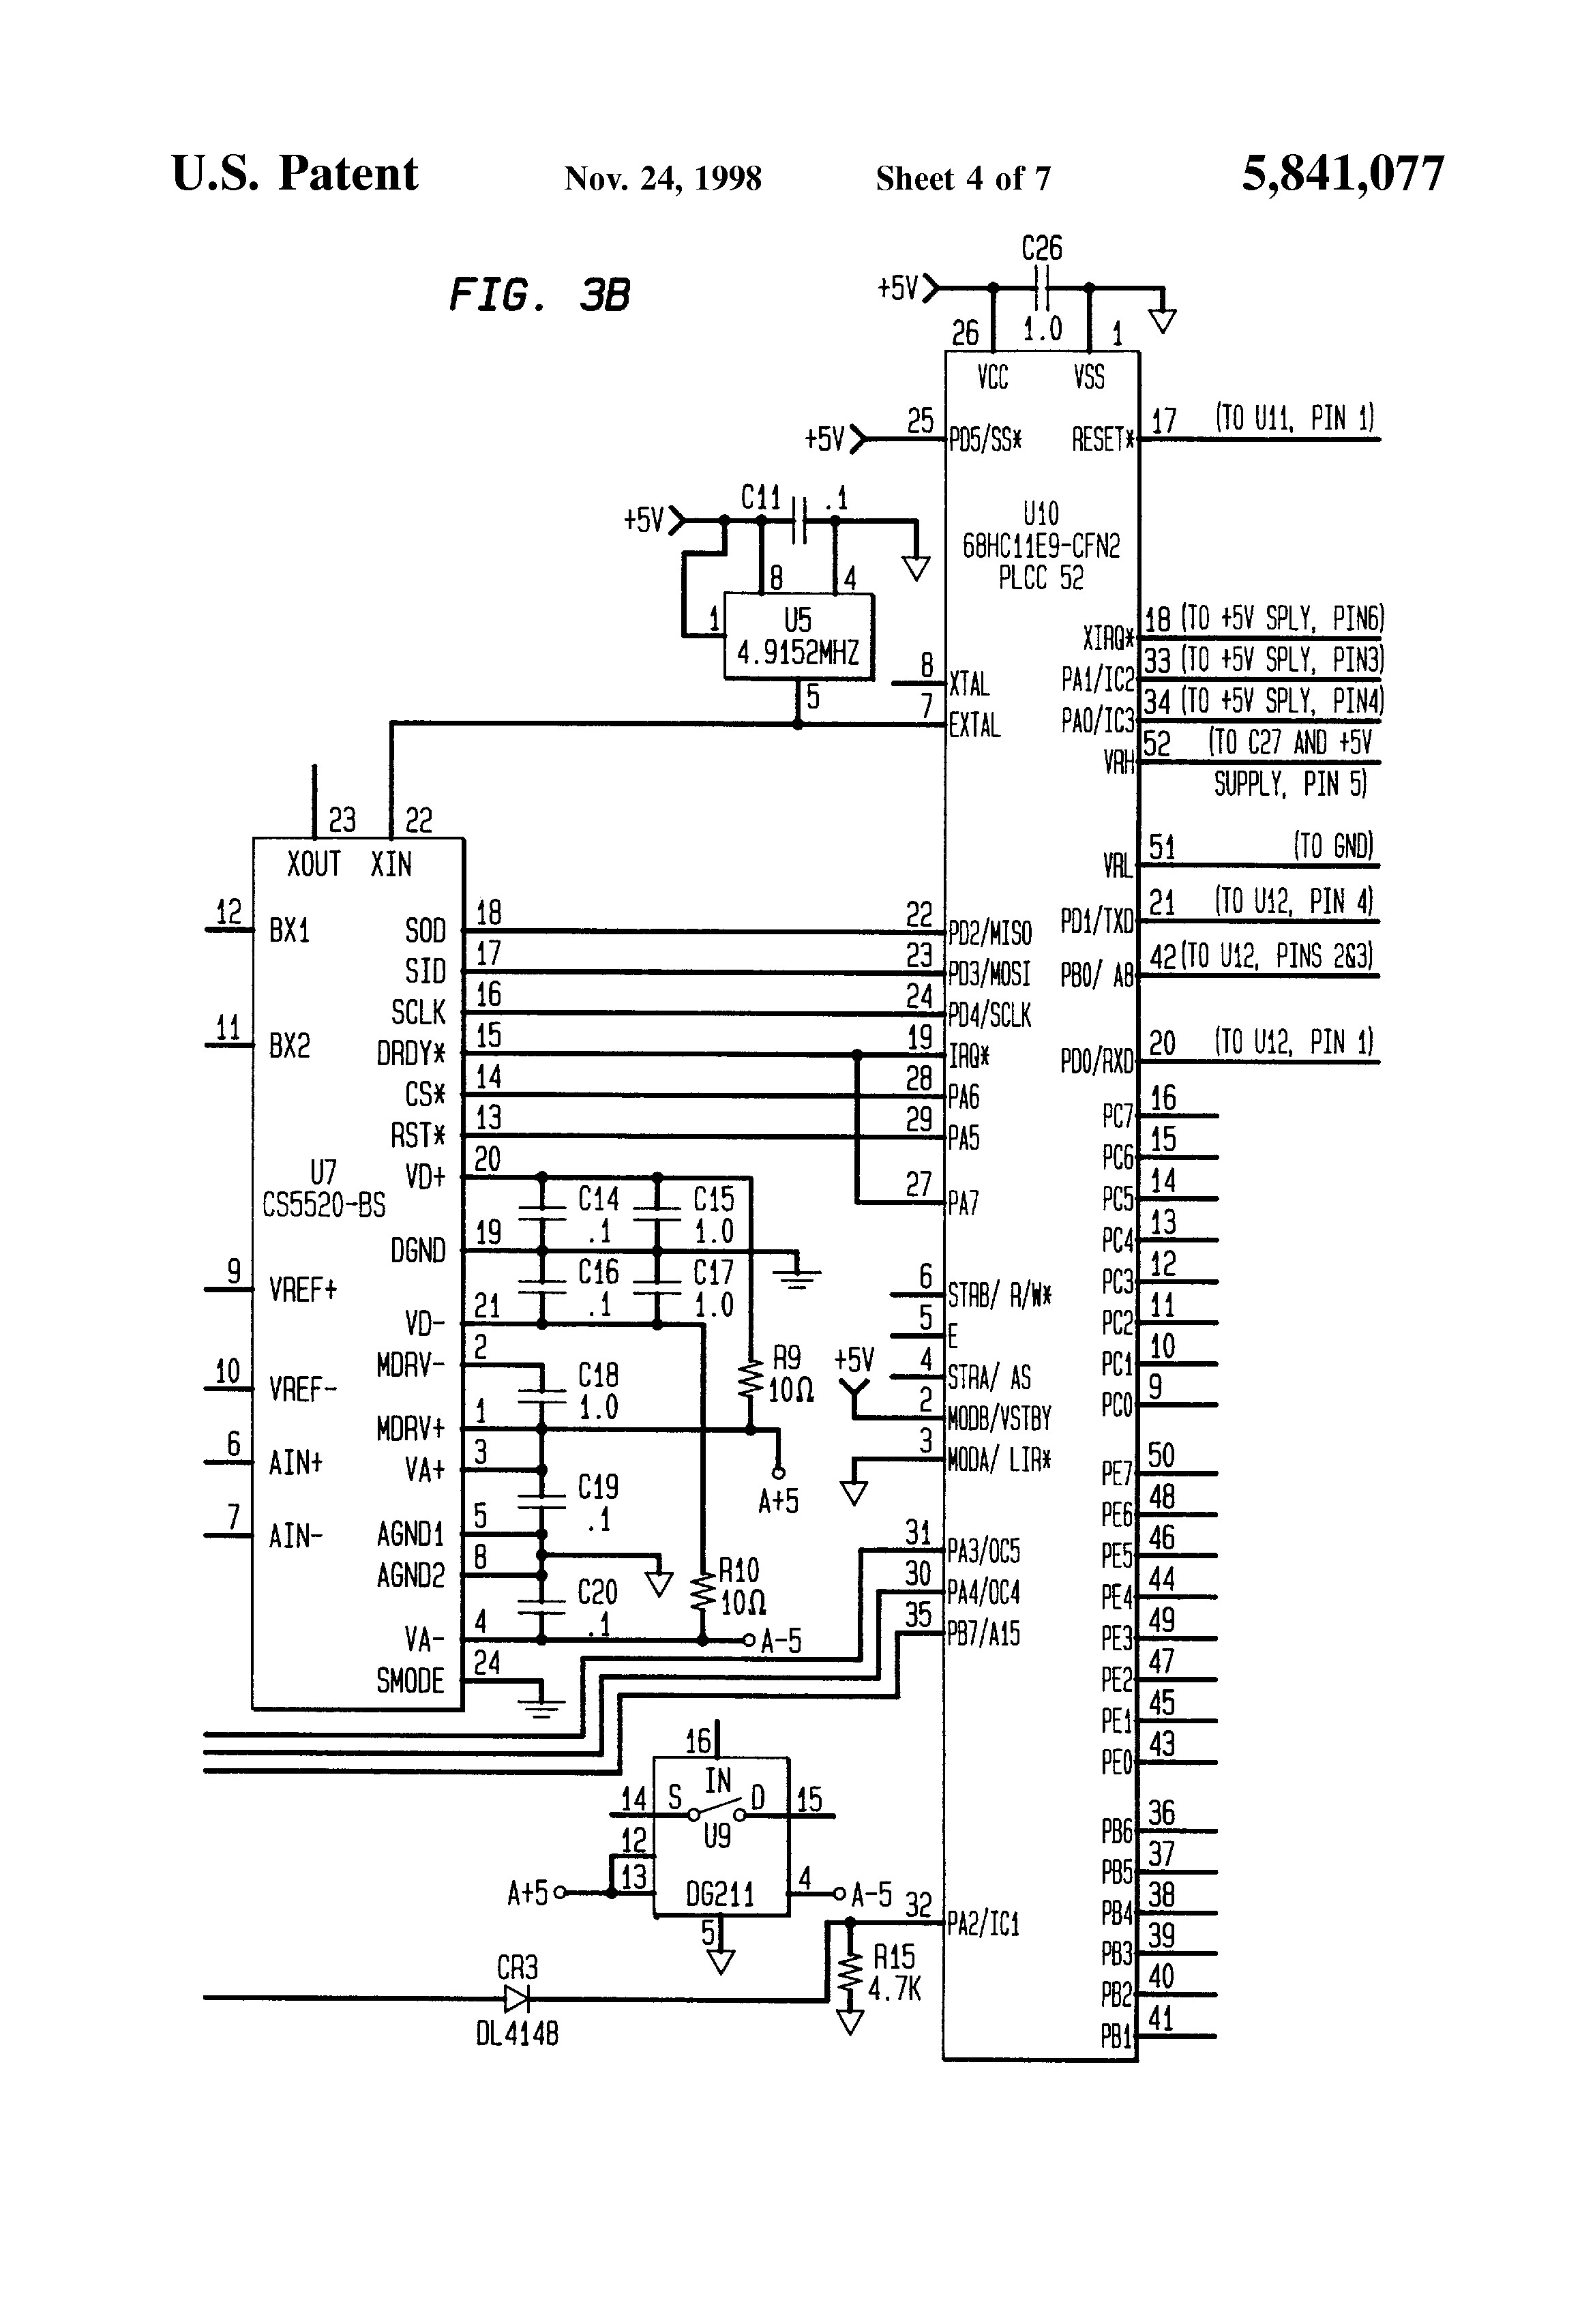 white rodgers 50e47 843 wiring diagram gallery